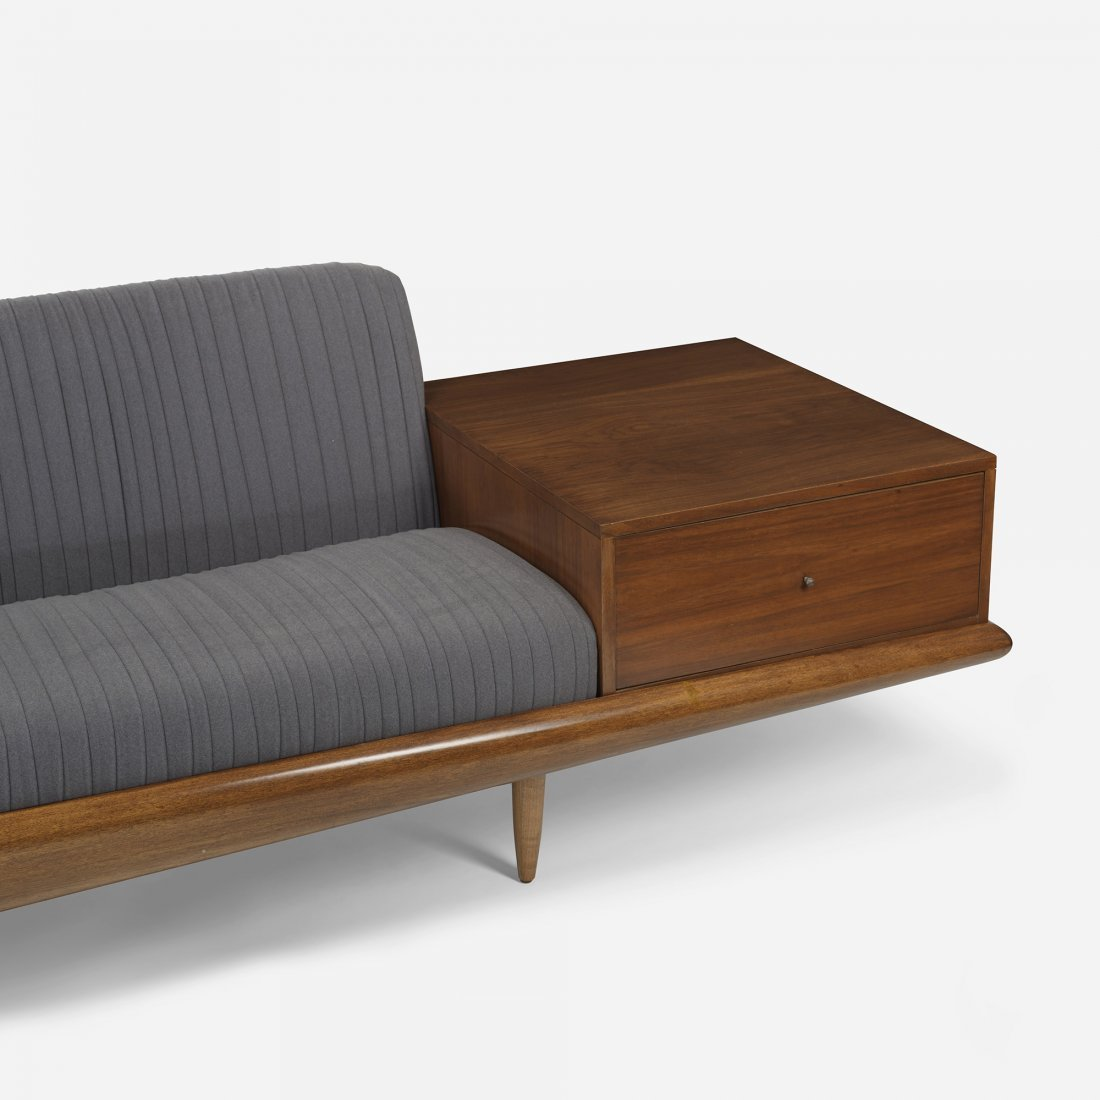 Adrian Pearsall sofa, model 615-D2T - 2